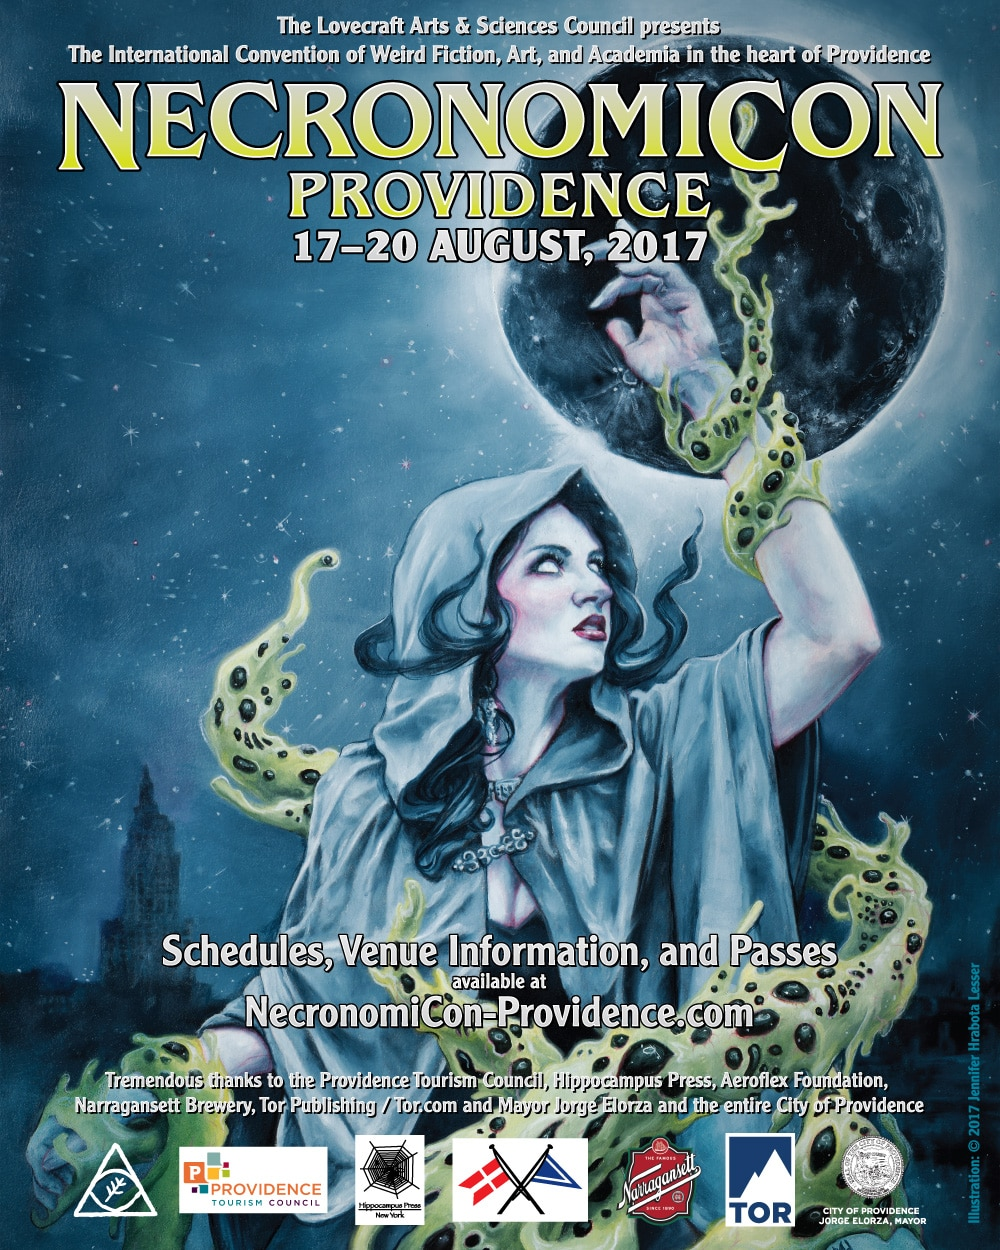 NecronomiCon Providence Convention August 17-20 2017